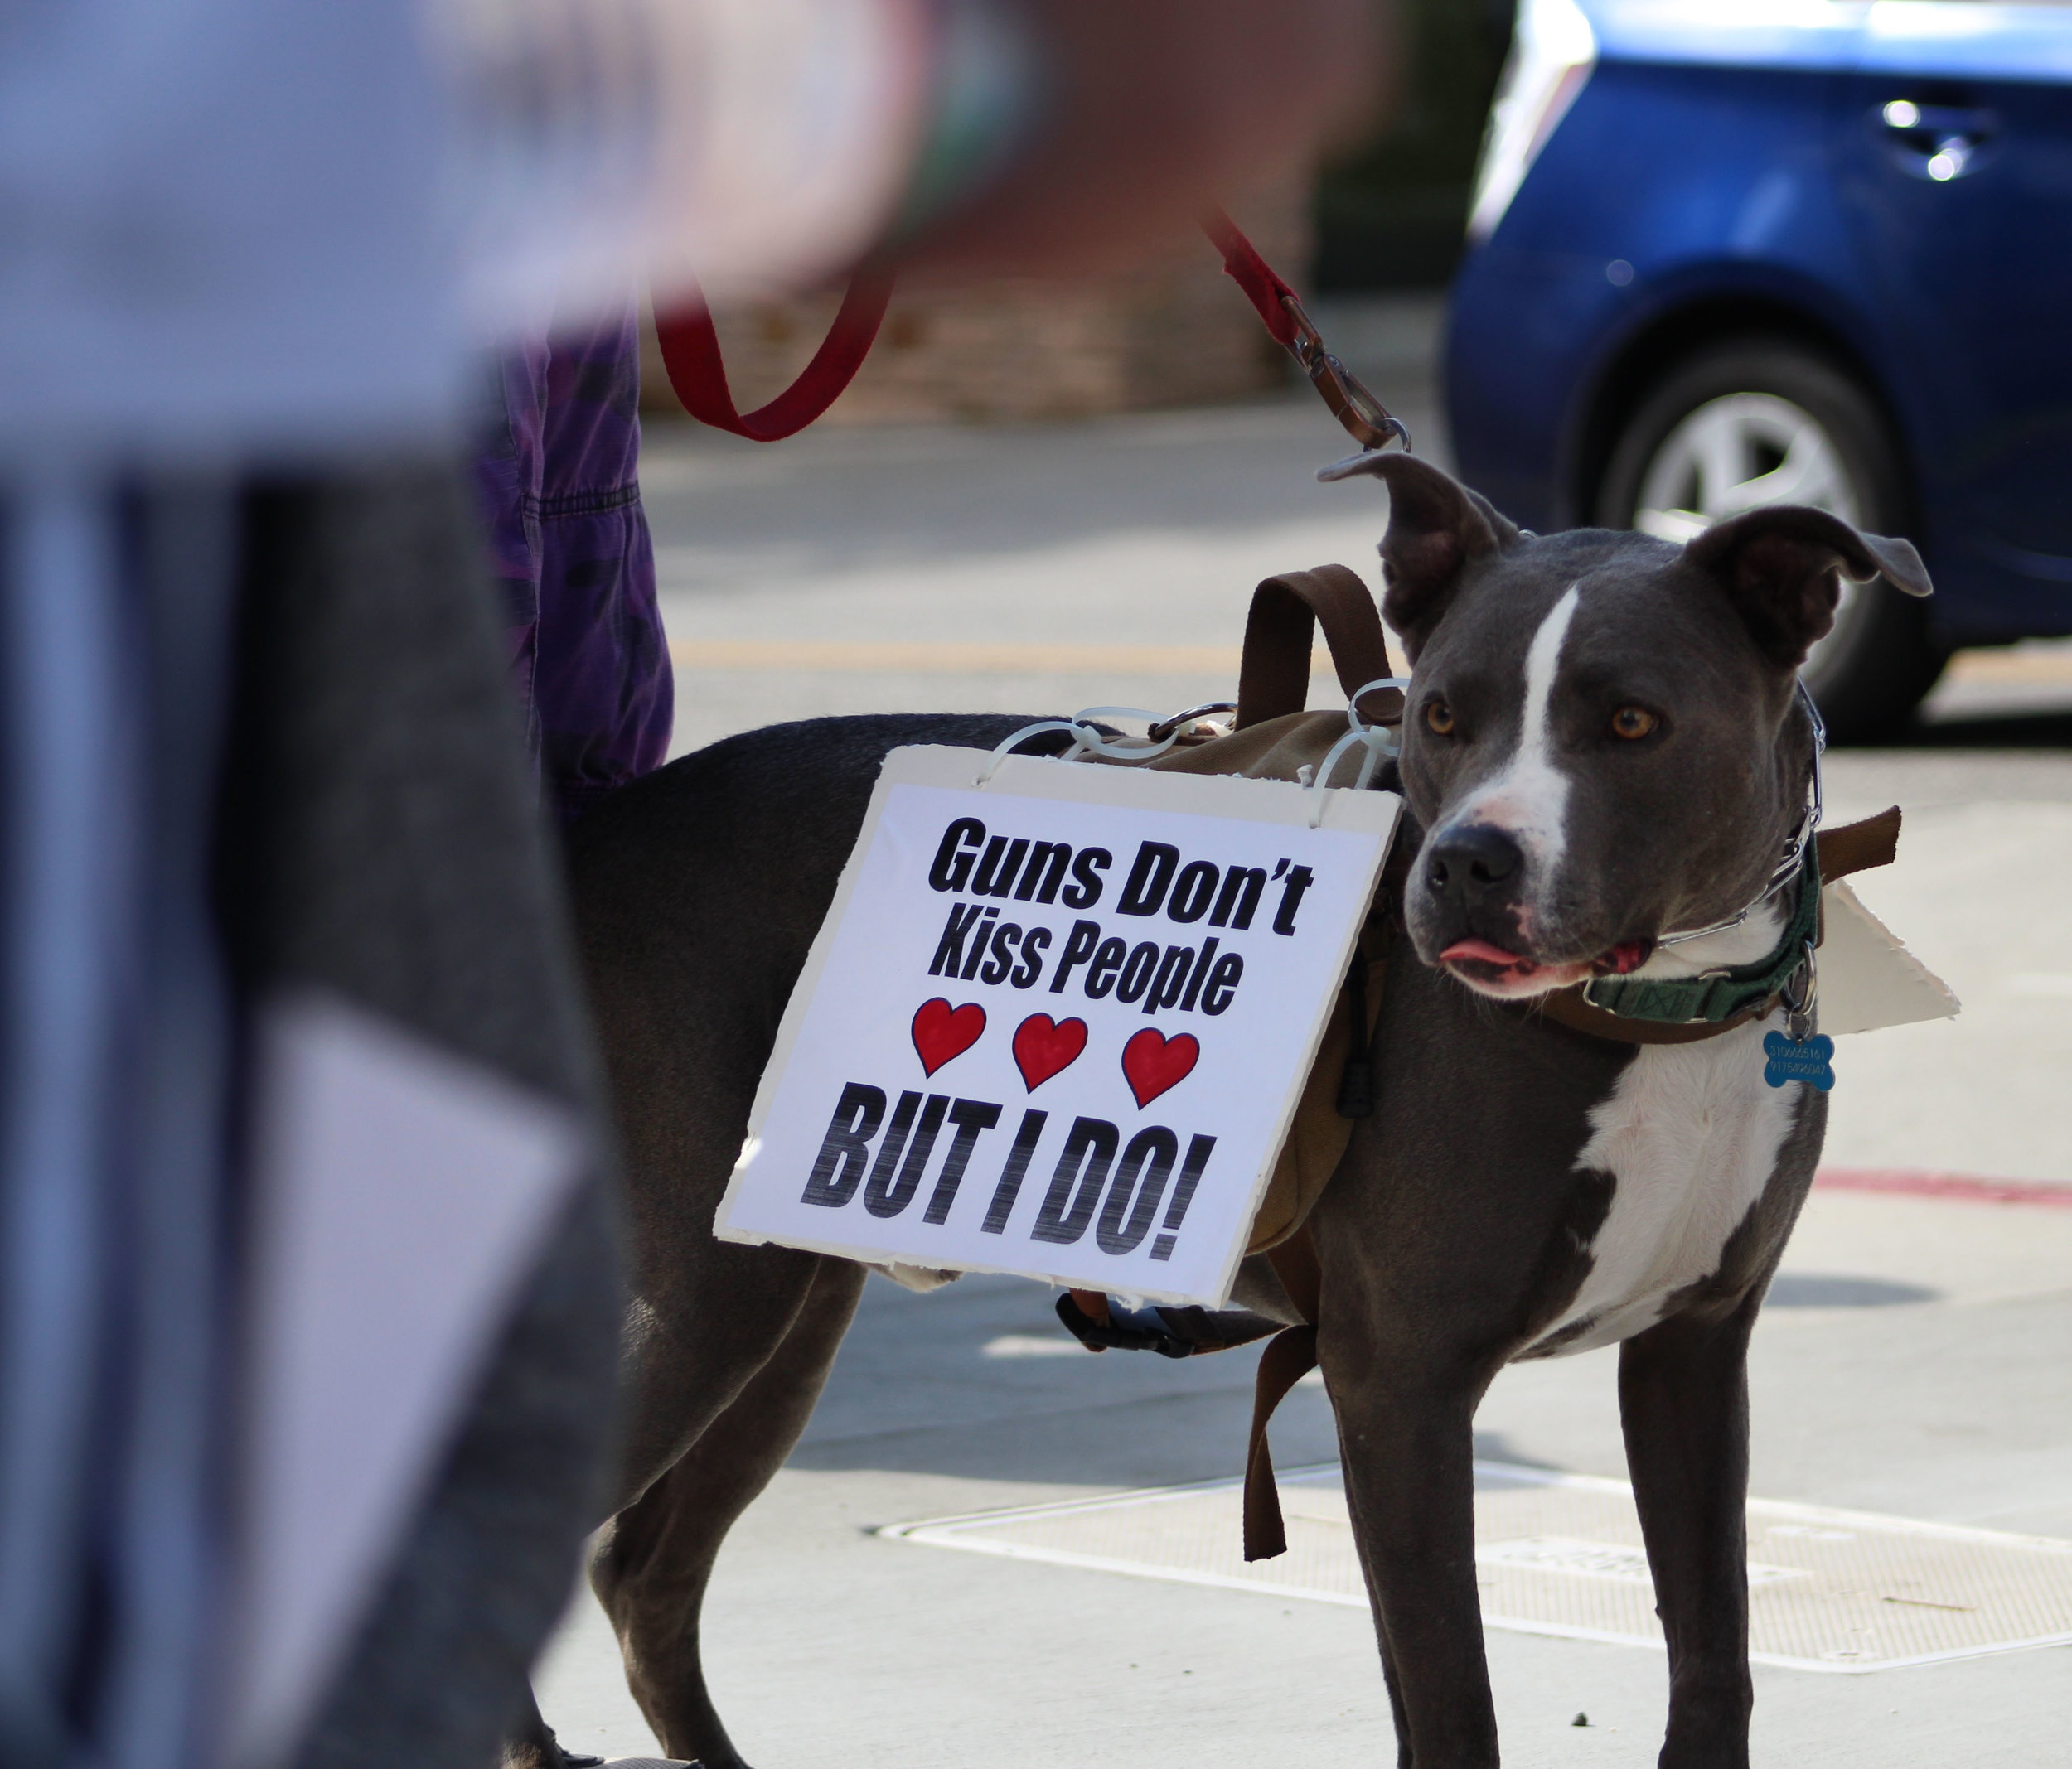 Santa Monica residents and dog gather to protest gun violence on Montana Avenue in Santa Monica, California. On Saturday, March 24, 2018. (Pyper Witt/Corsair Photo)